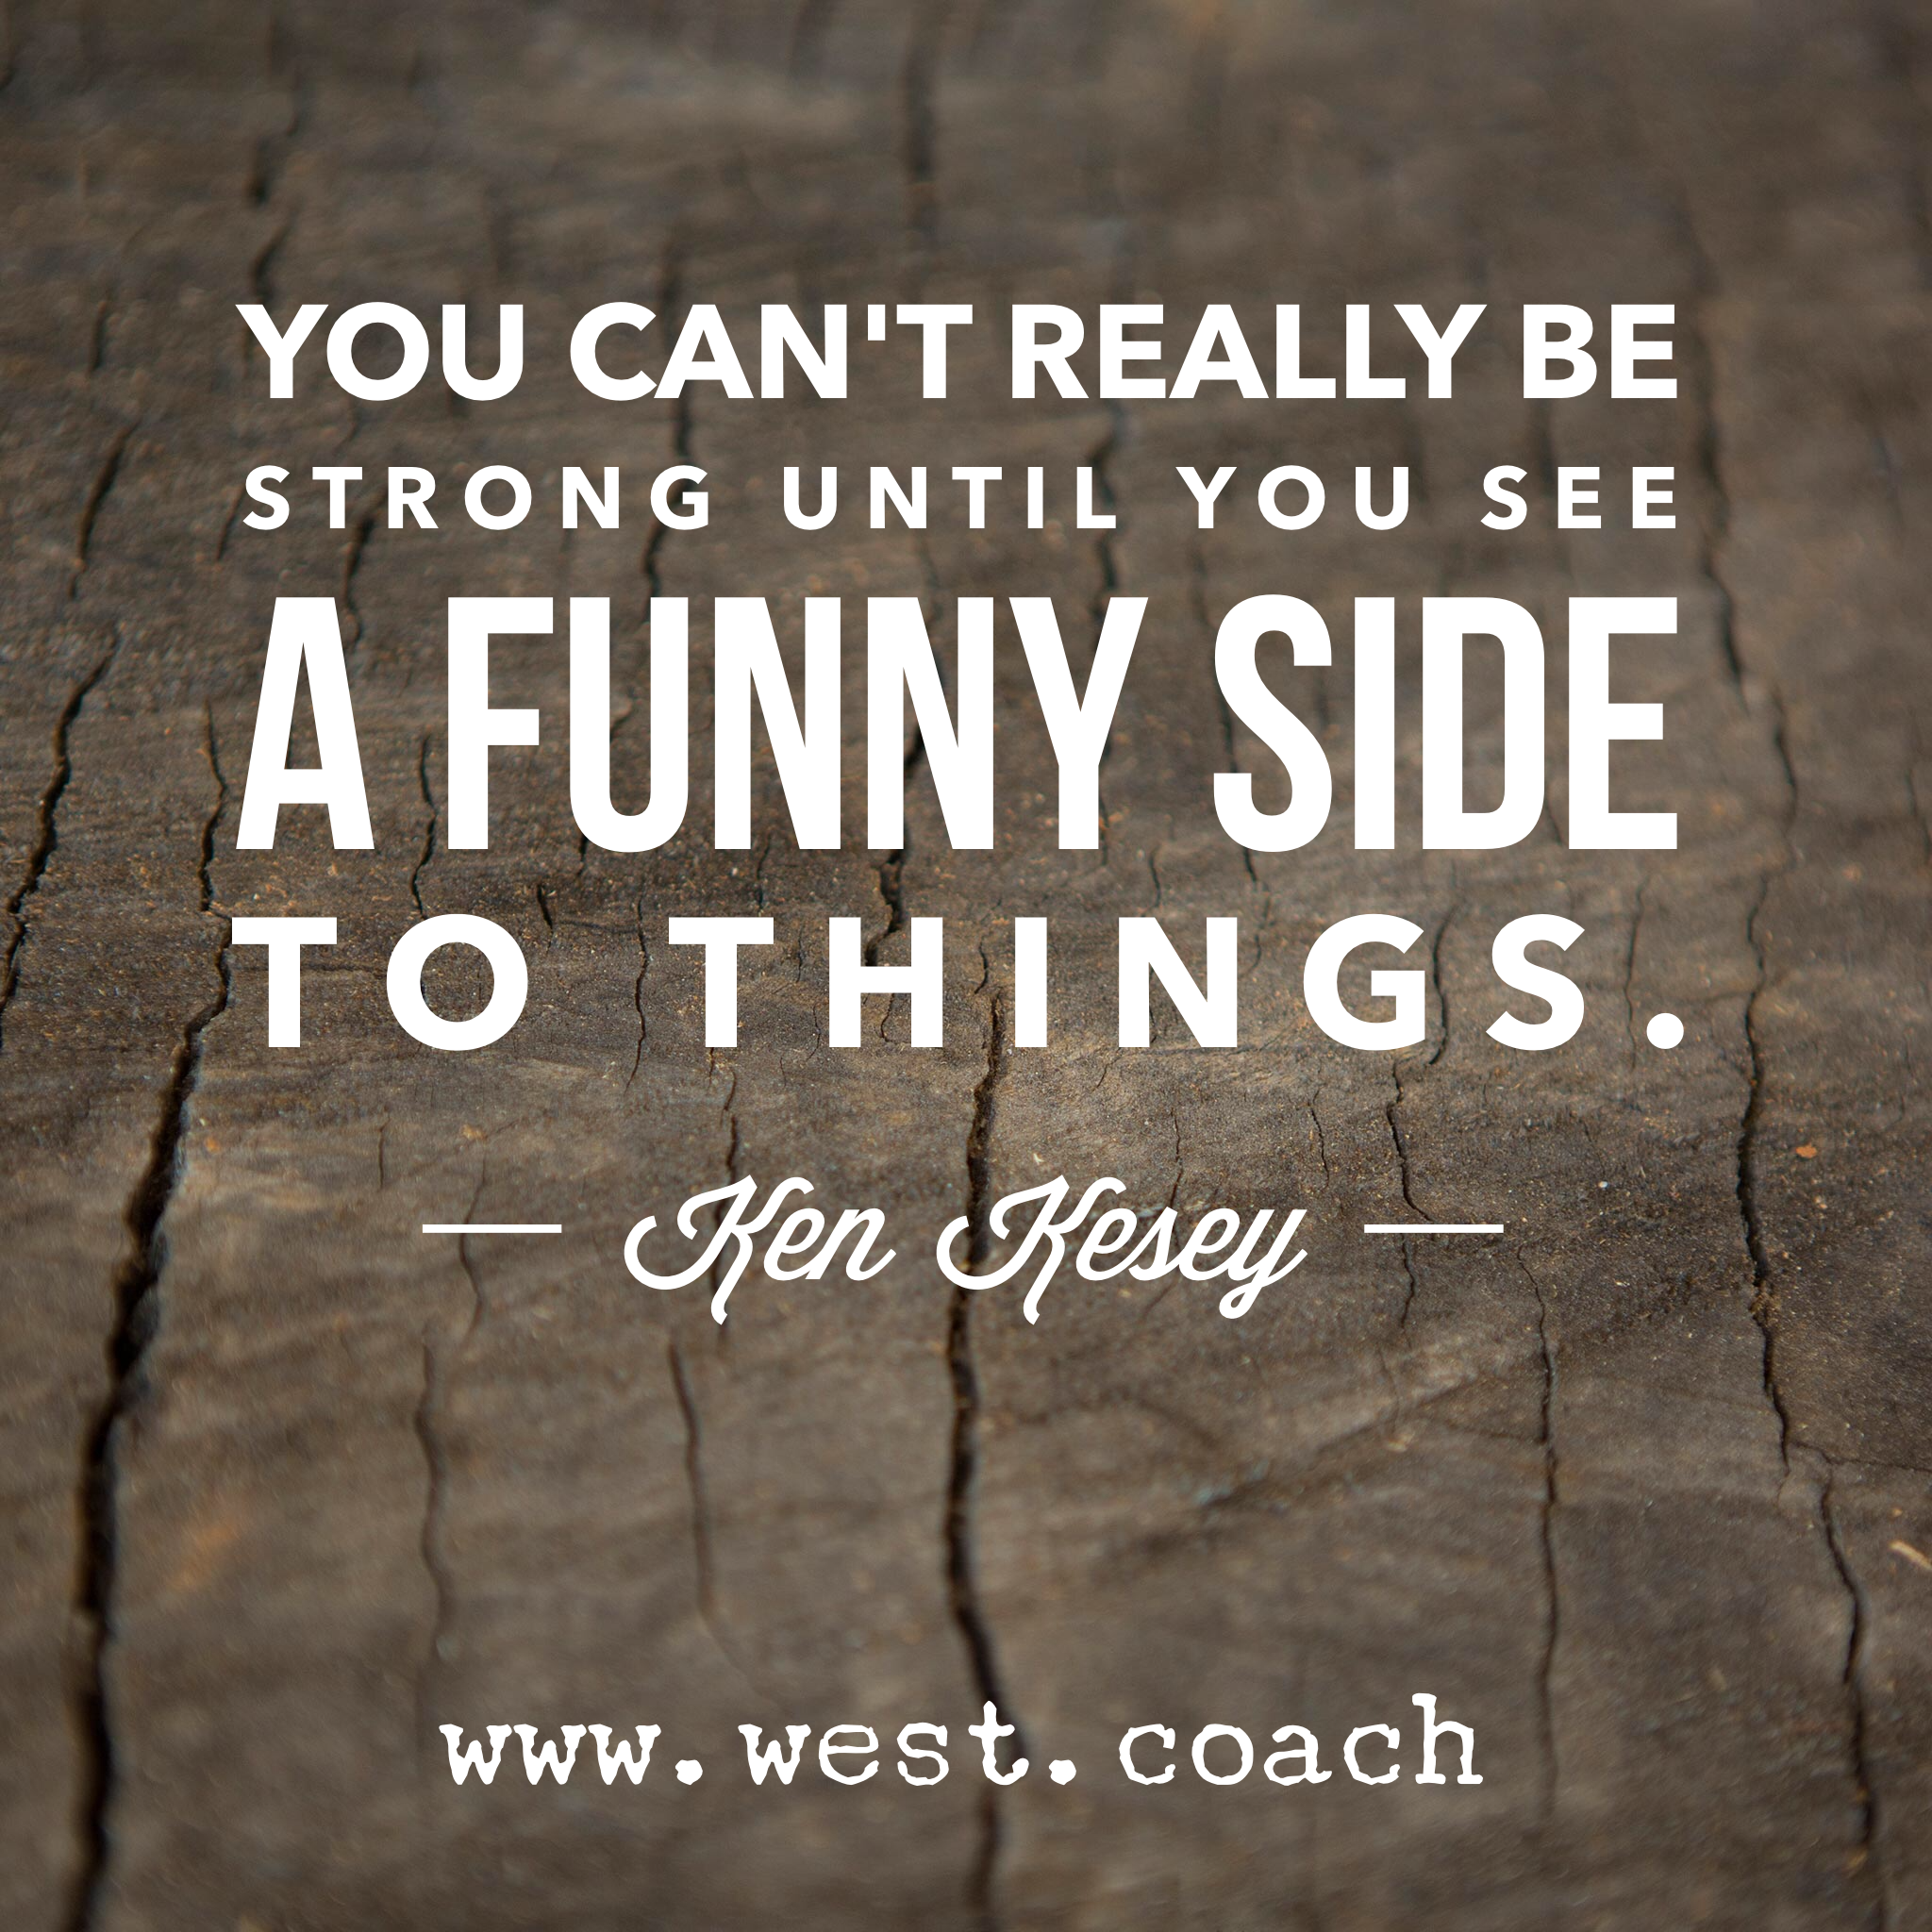 Motivational Quotes Life Inspiration  Eileen West Life Coach  You Can't Really Be Strong